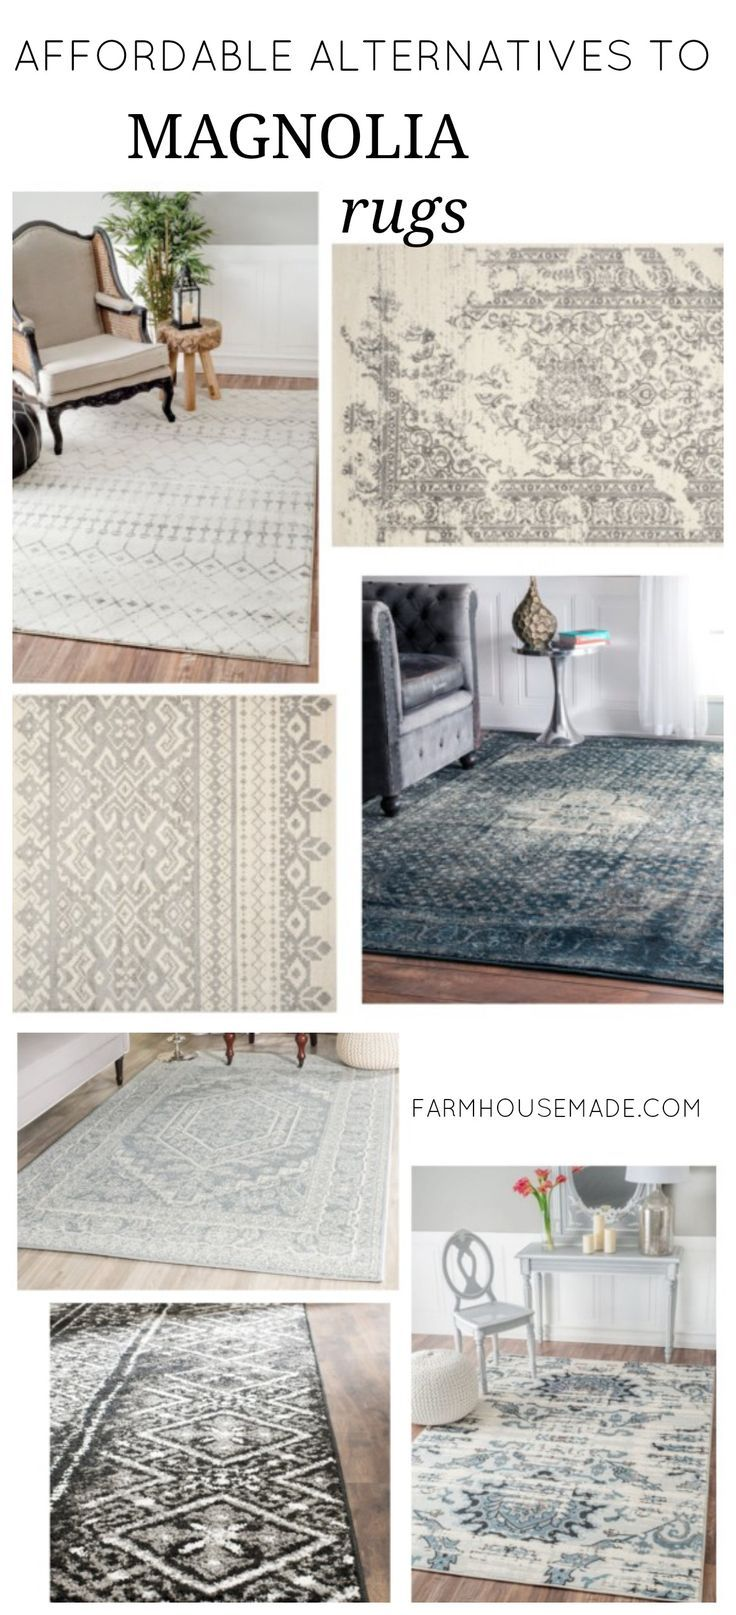 What To Do When You Can't Afford Joanna's Rugs Rugs in